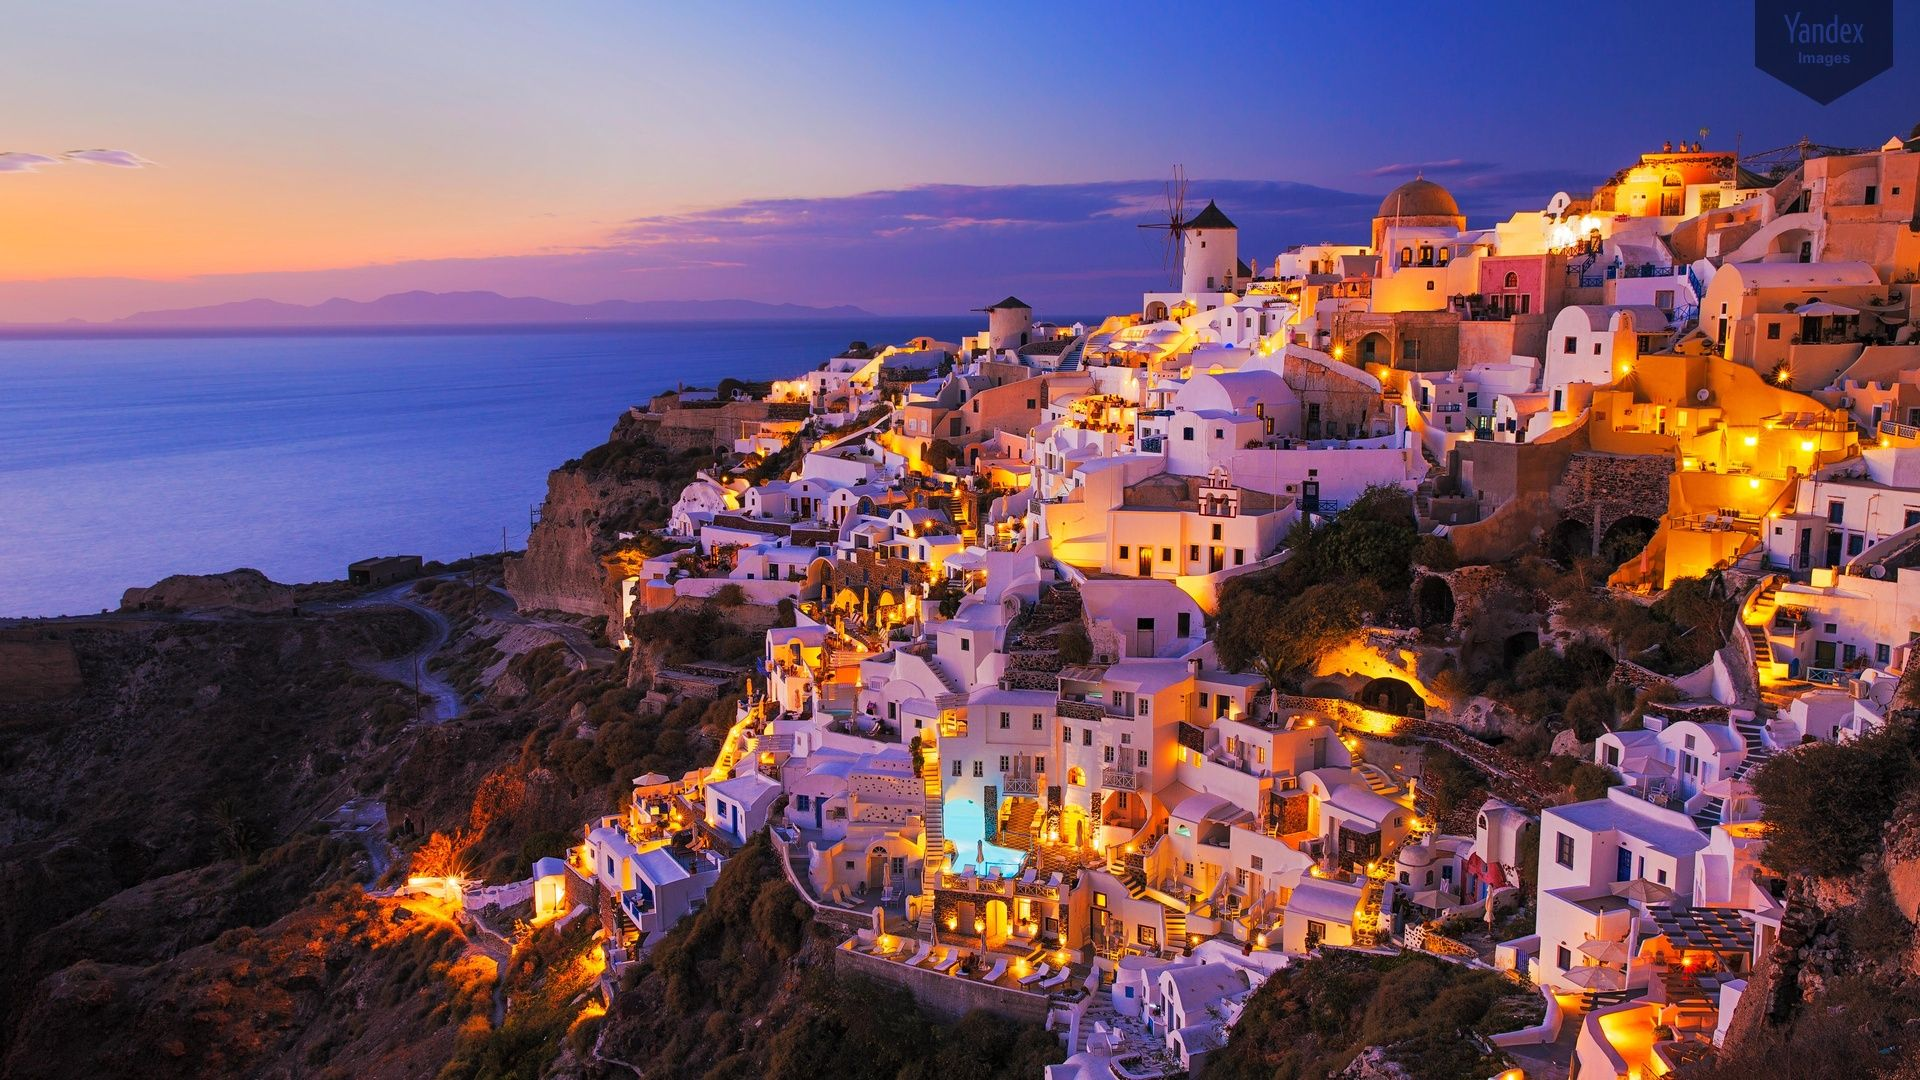 70 Santorini Wallpapers   Download at WallpaperBro 1920x1080